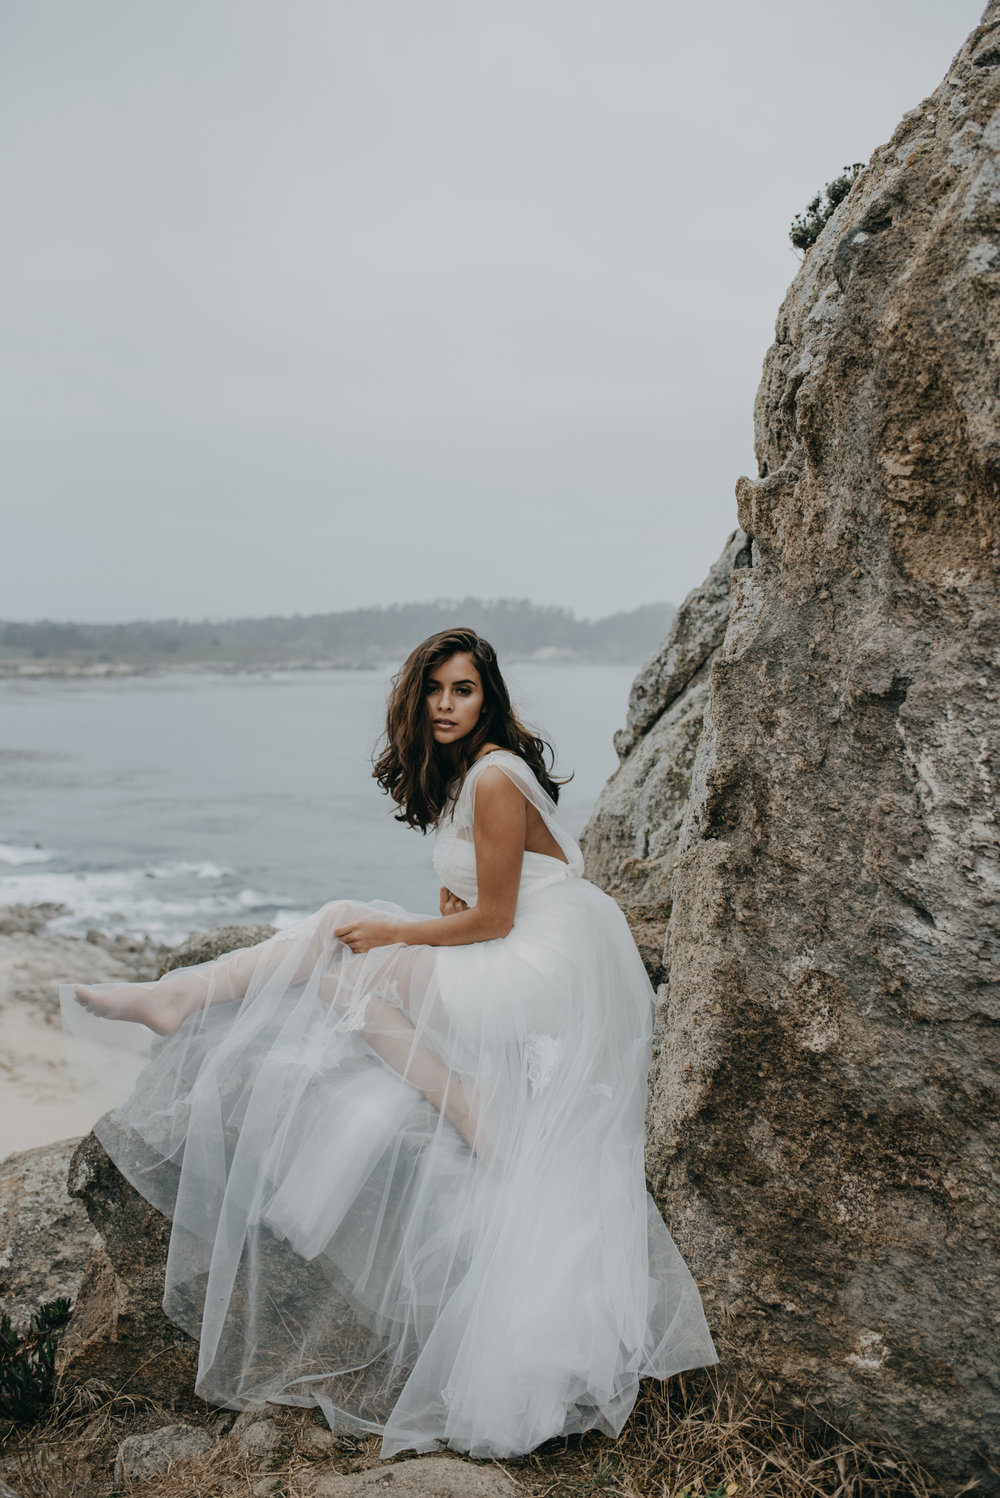 """Dennese's measurements are: Height 5'3 / Bust 32"""" / Waist 26"""" / Hip 32""""   All Lyra Vega Bridal gowns are    custom made to measure"""